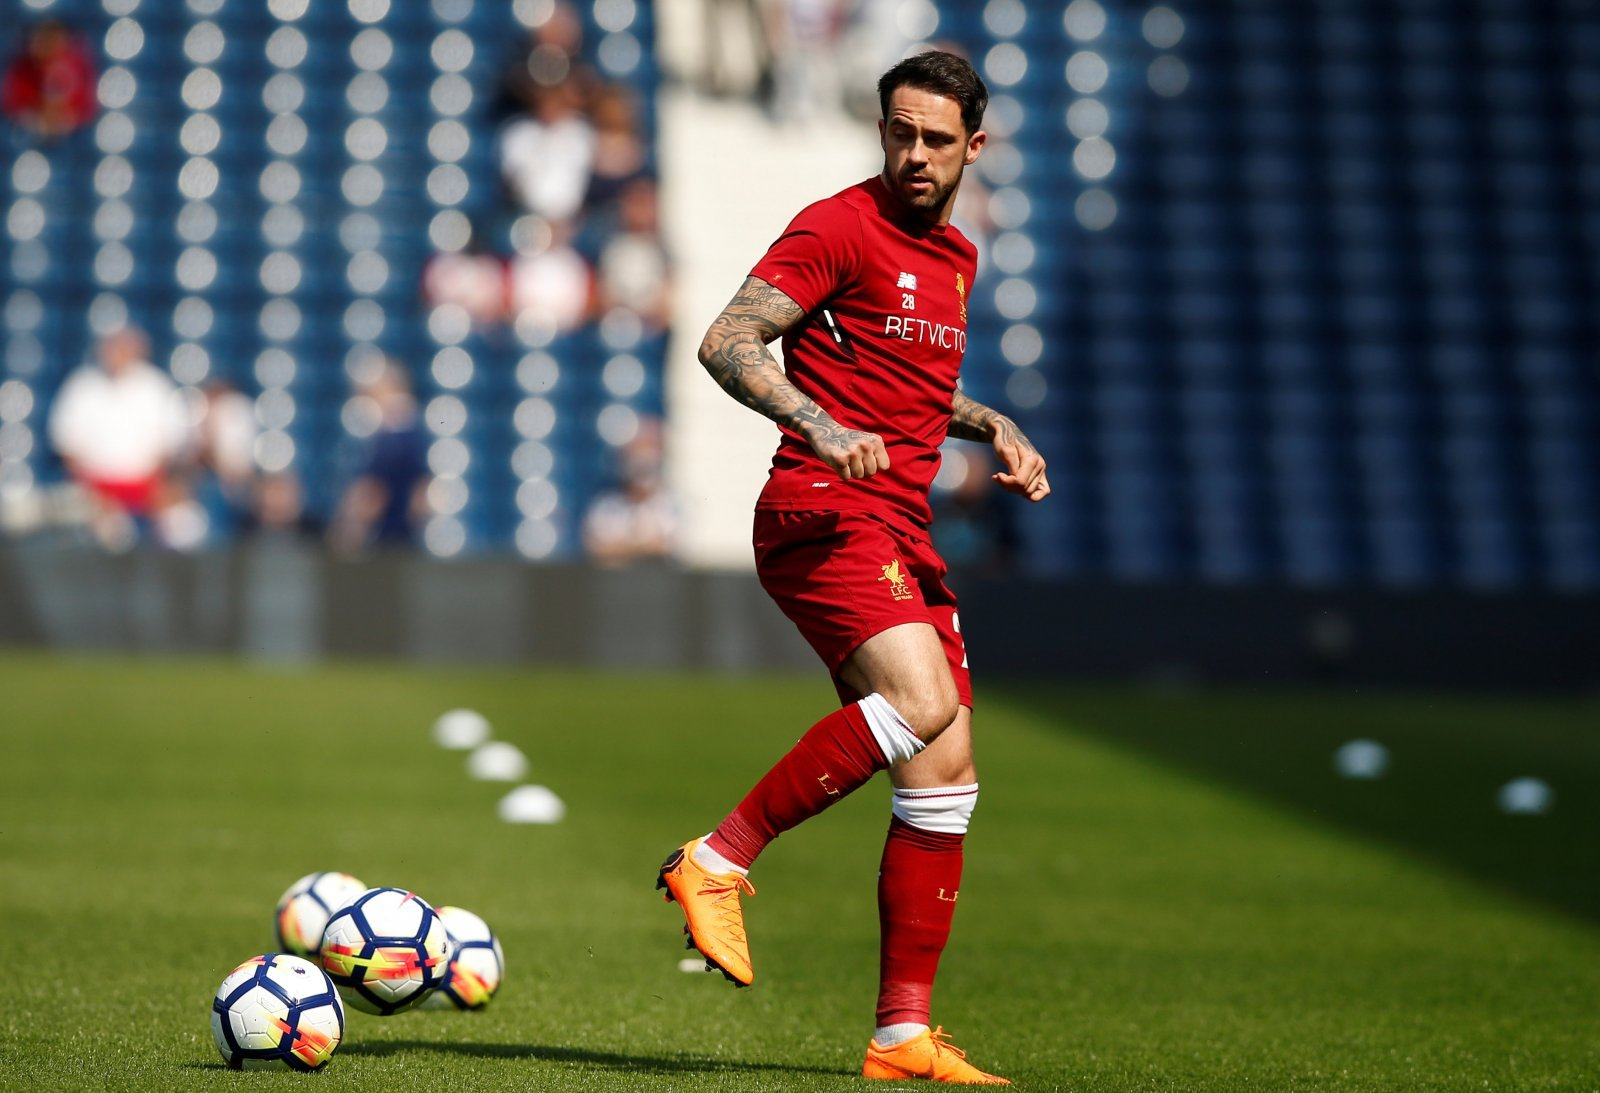 Southampton confirm Danny Ings deal